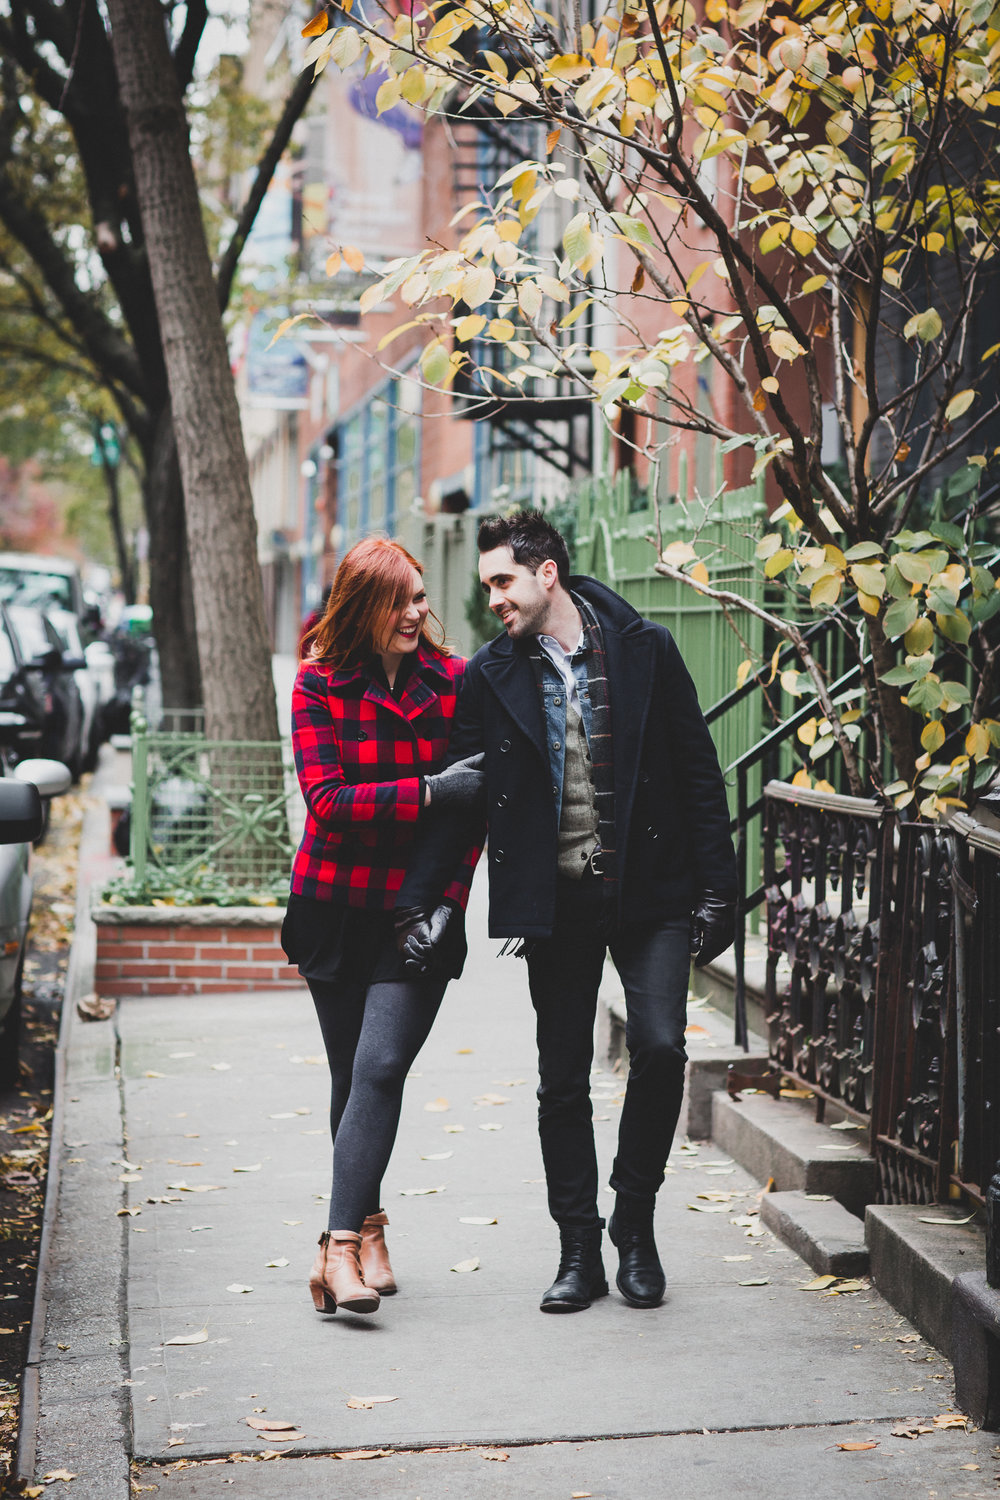 The-High-Line-Manhattan-Fall-Engagement-Photos-by-Elvira-Kalviste-Photography-22.jpg